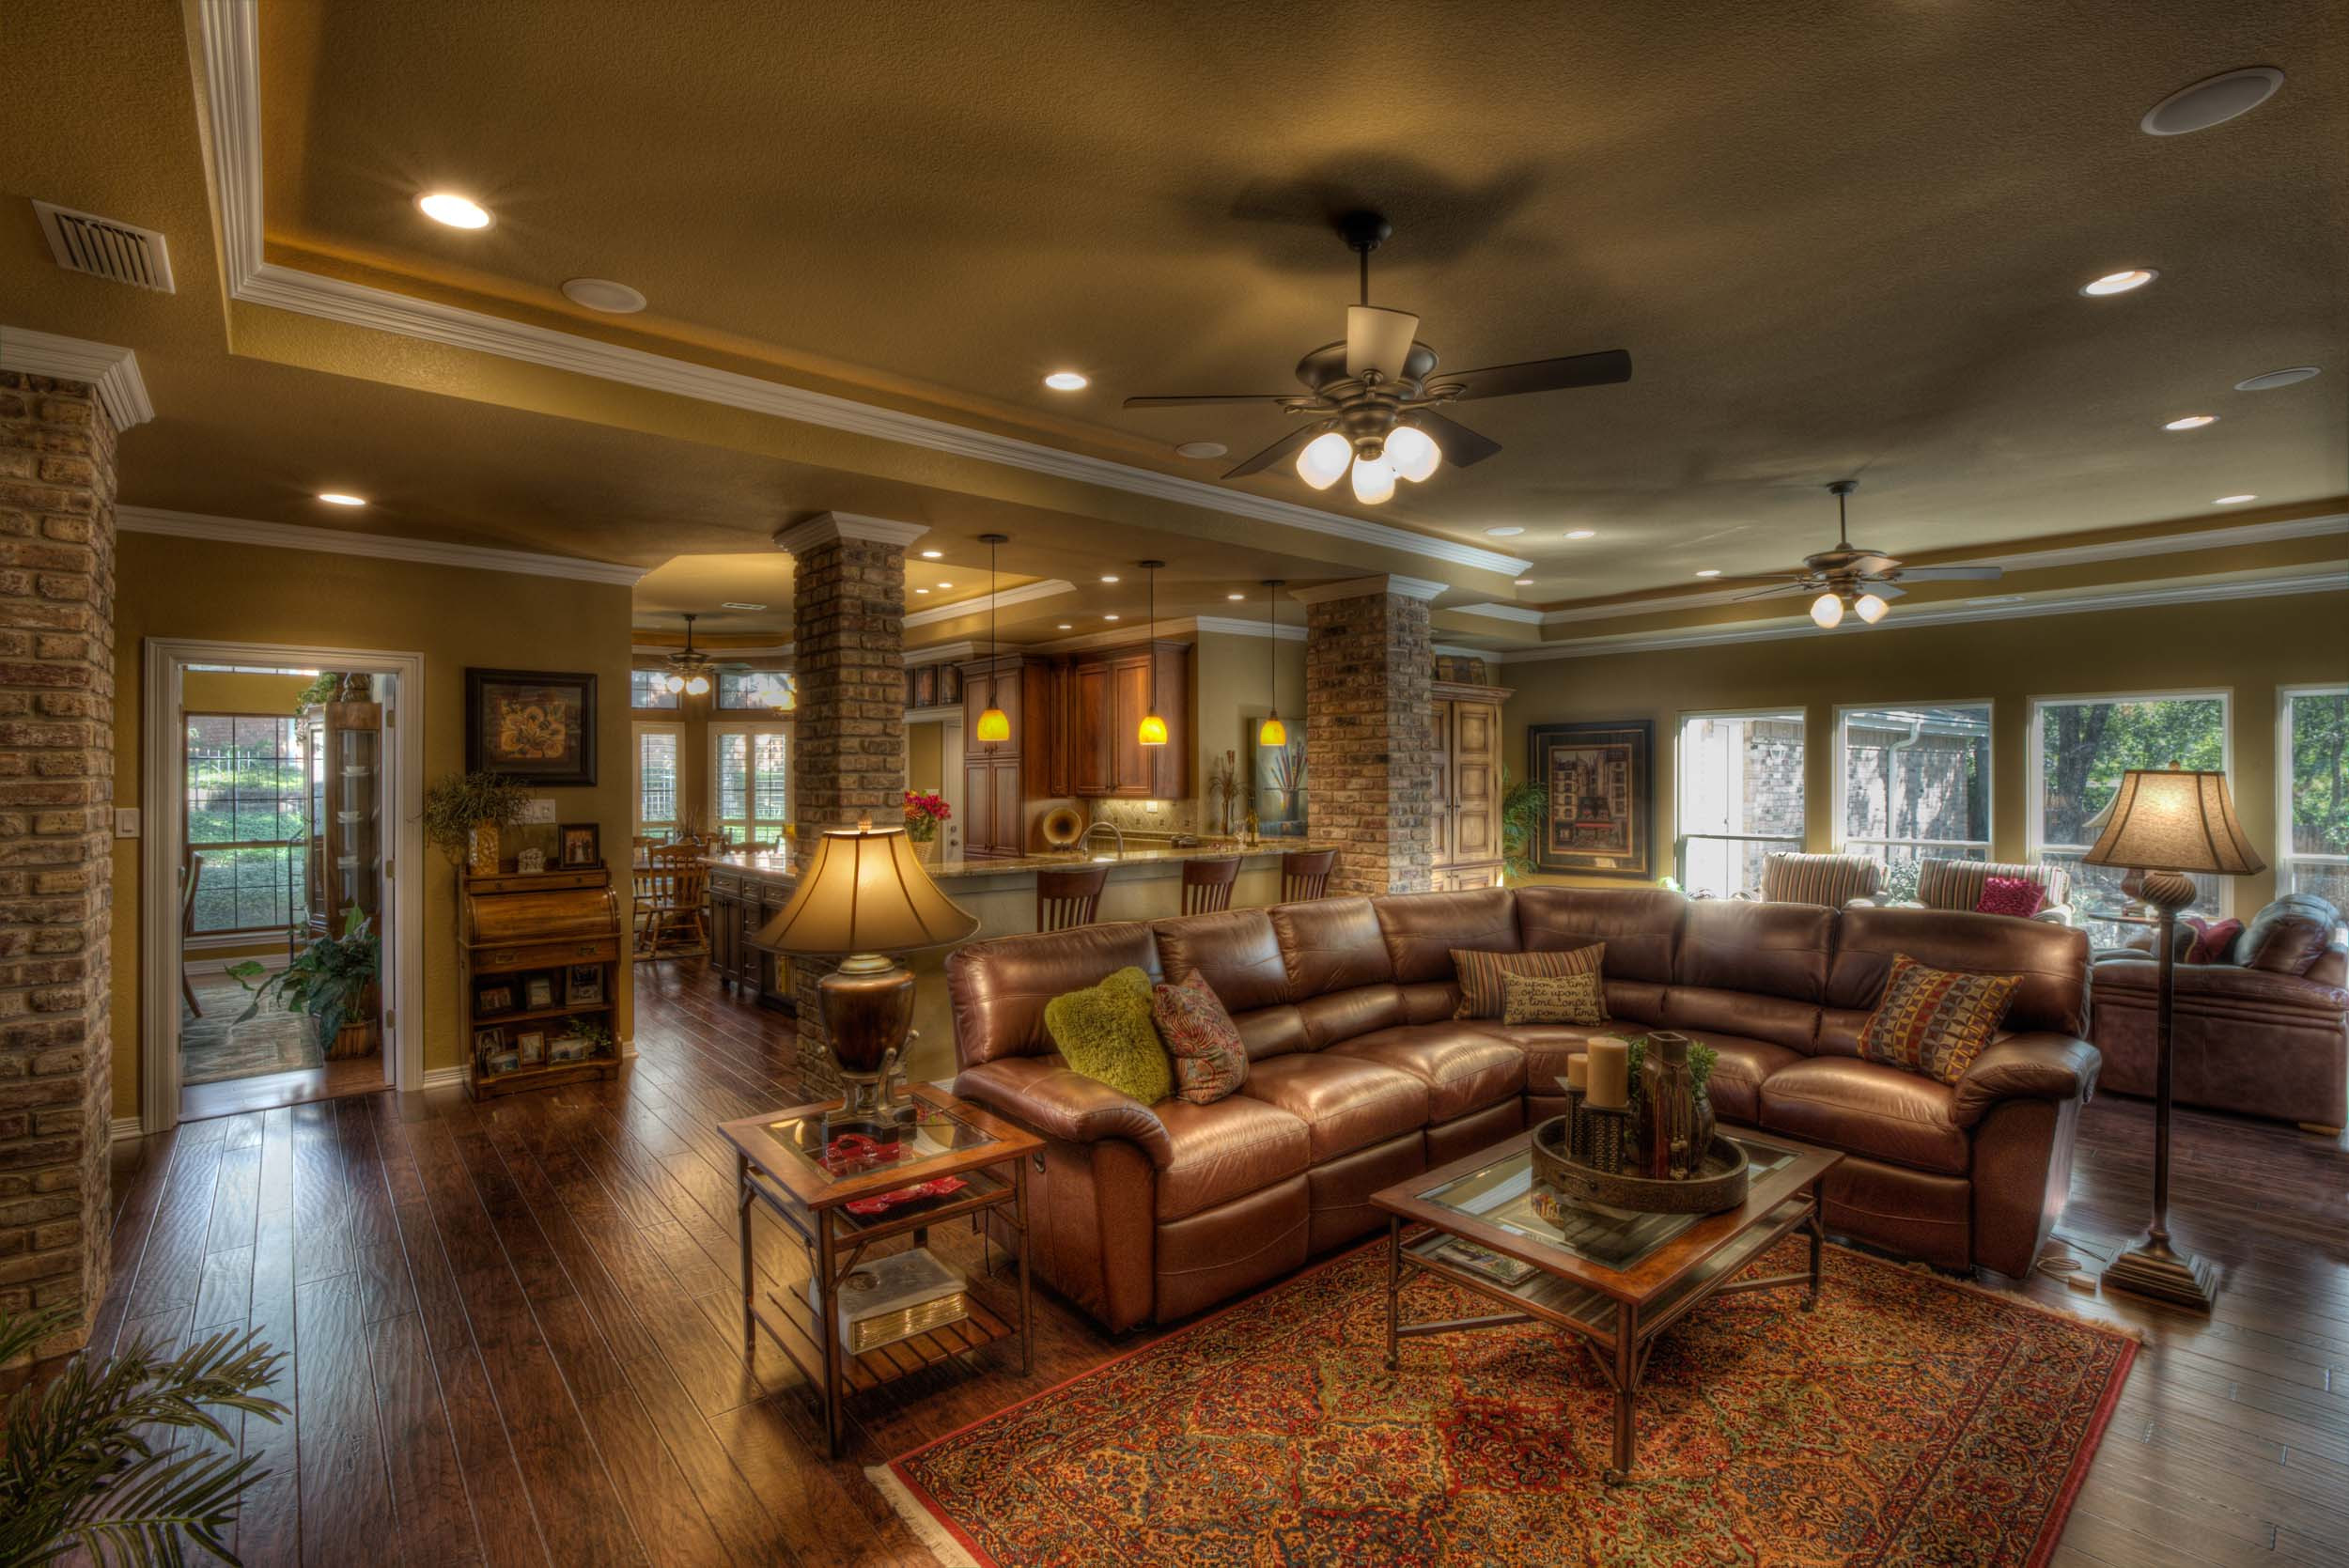 Best ideas about Living Room Remodel . Save or Pin Remodeling Family Room Now.